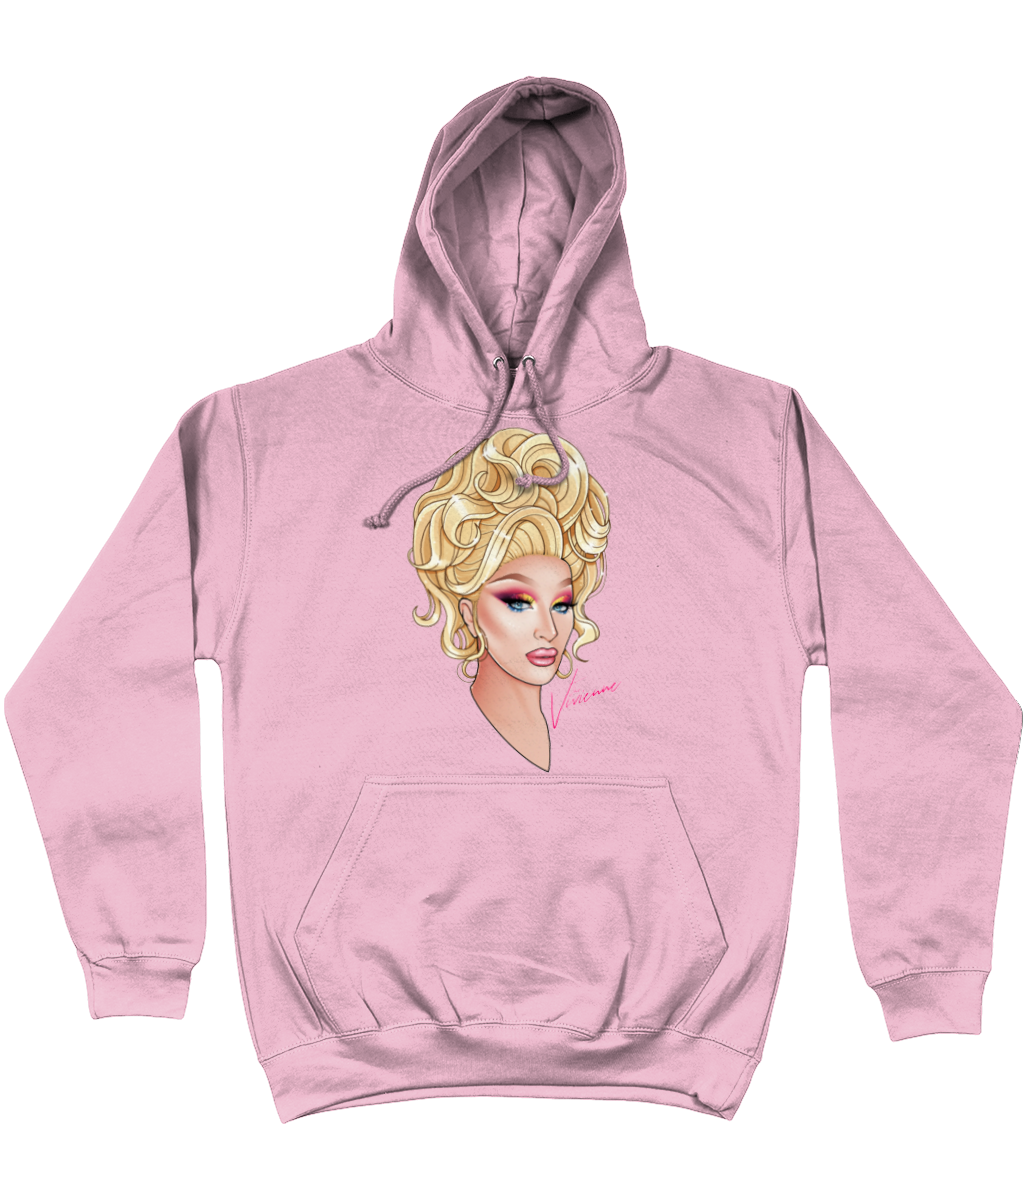 The Vivienne - Official Merch - hoodie